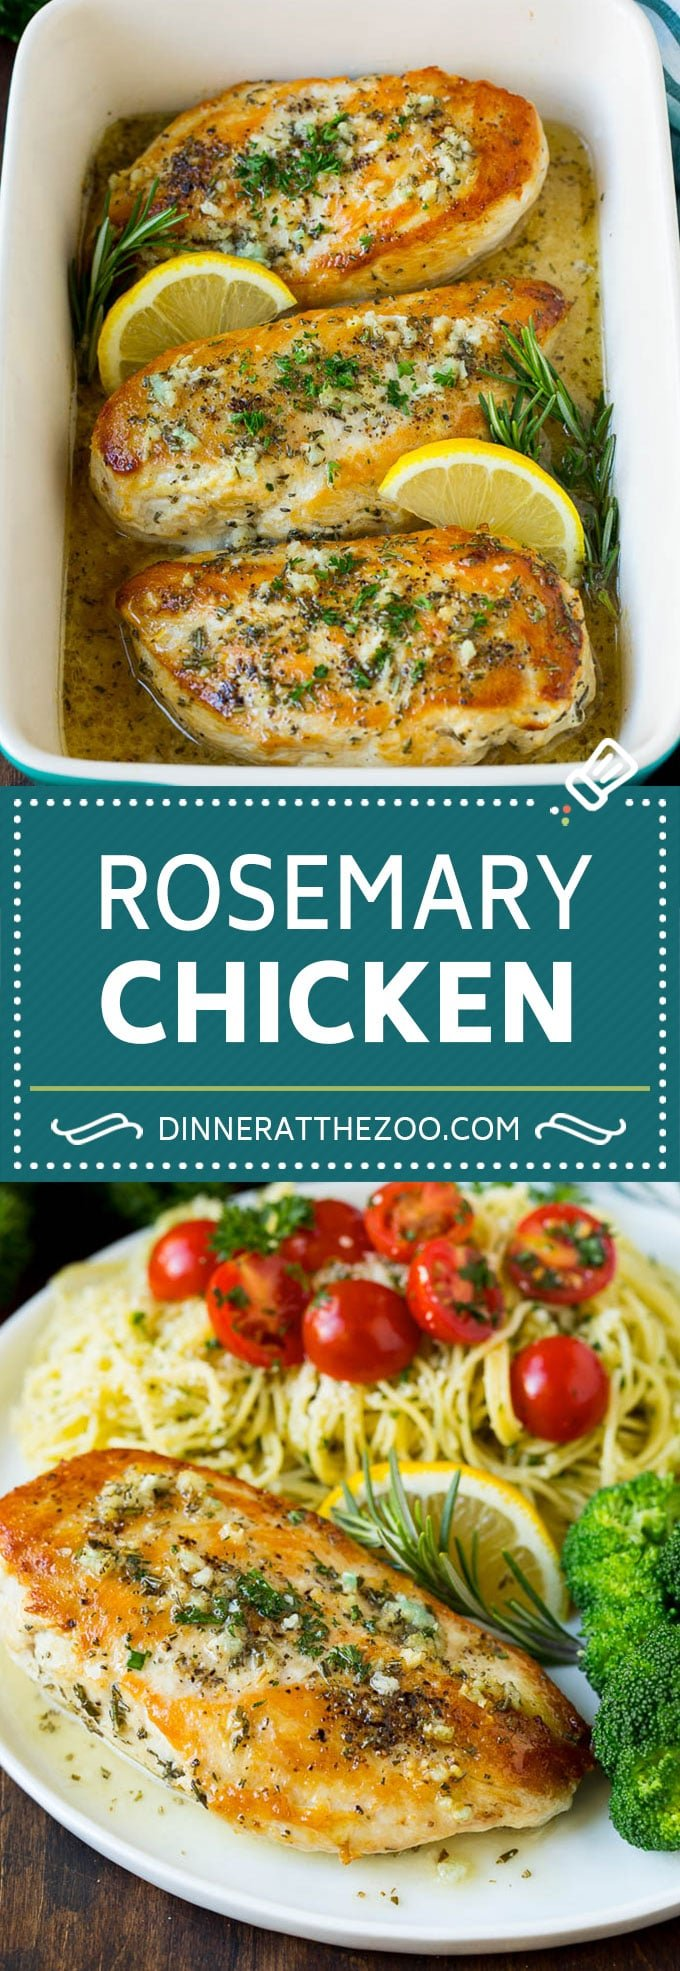 Rosemary Chicken Recipe | Baked Chicken #chicken #lemon #garlic #lowcarb #dinner #dinneratthezoo #rosemary